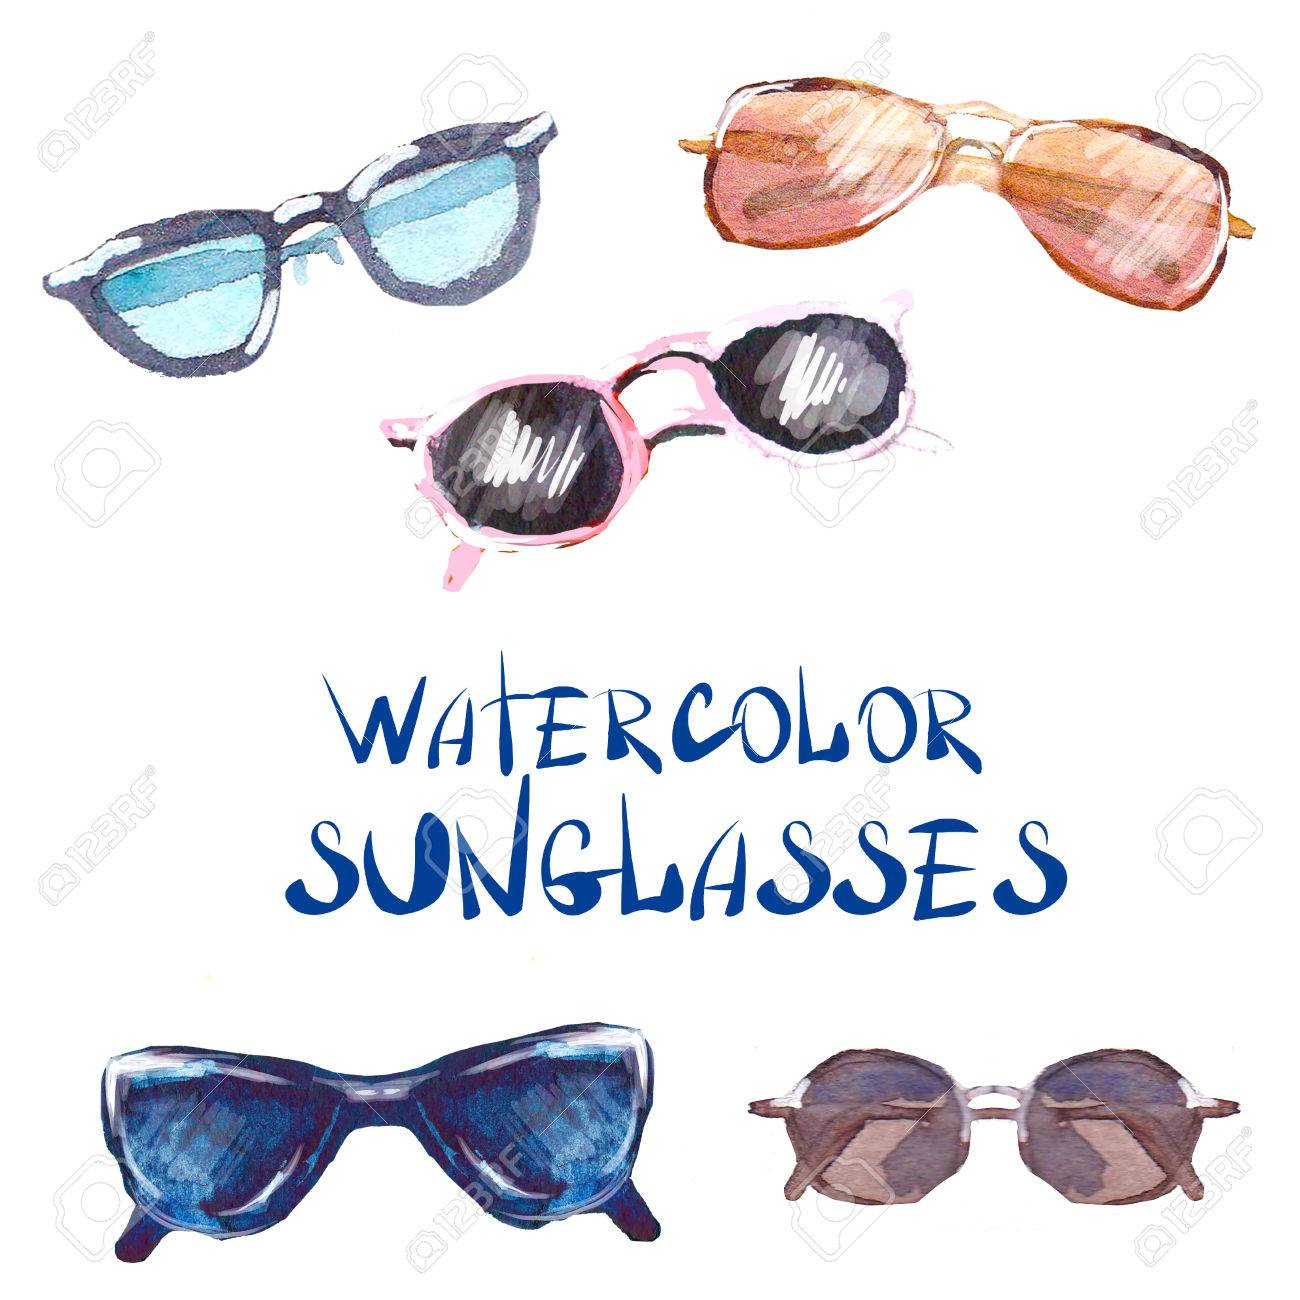 799a6ab9660 Vector - Watercolor sunglasses and glasses isolated on white background